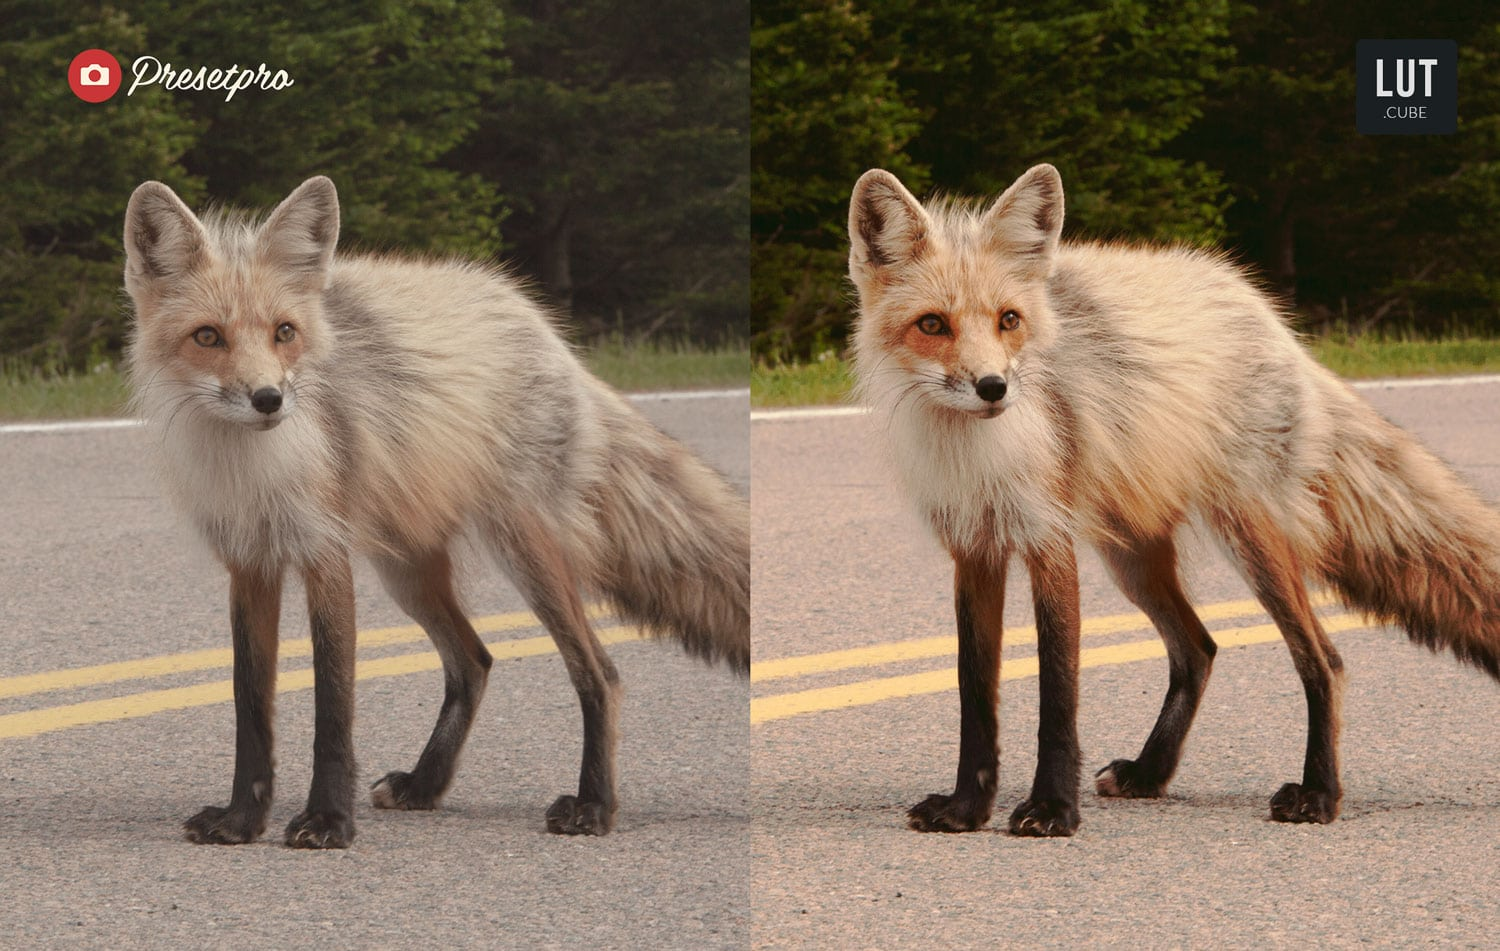 Free-LUTs-Vintage-Fox-Look-up-Table-Before-and-After-Presetpro